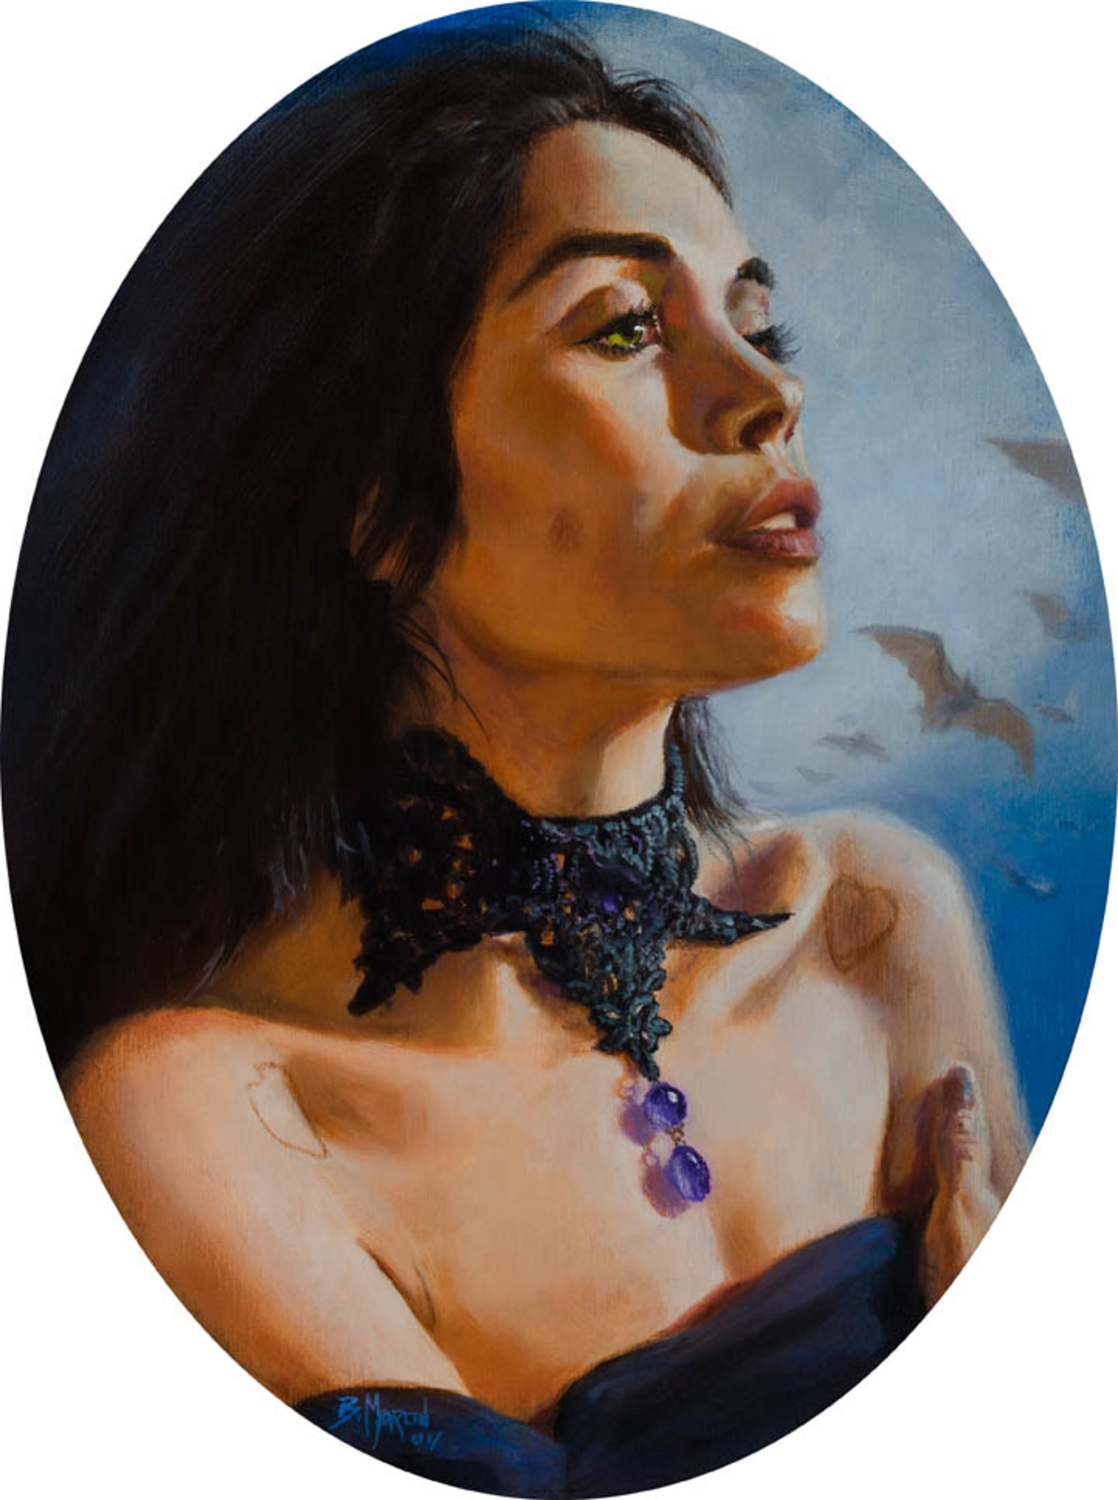 Witchy Woman III Artwork by Britt Martin